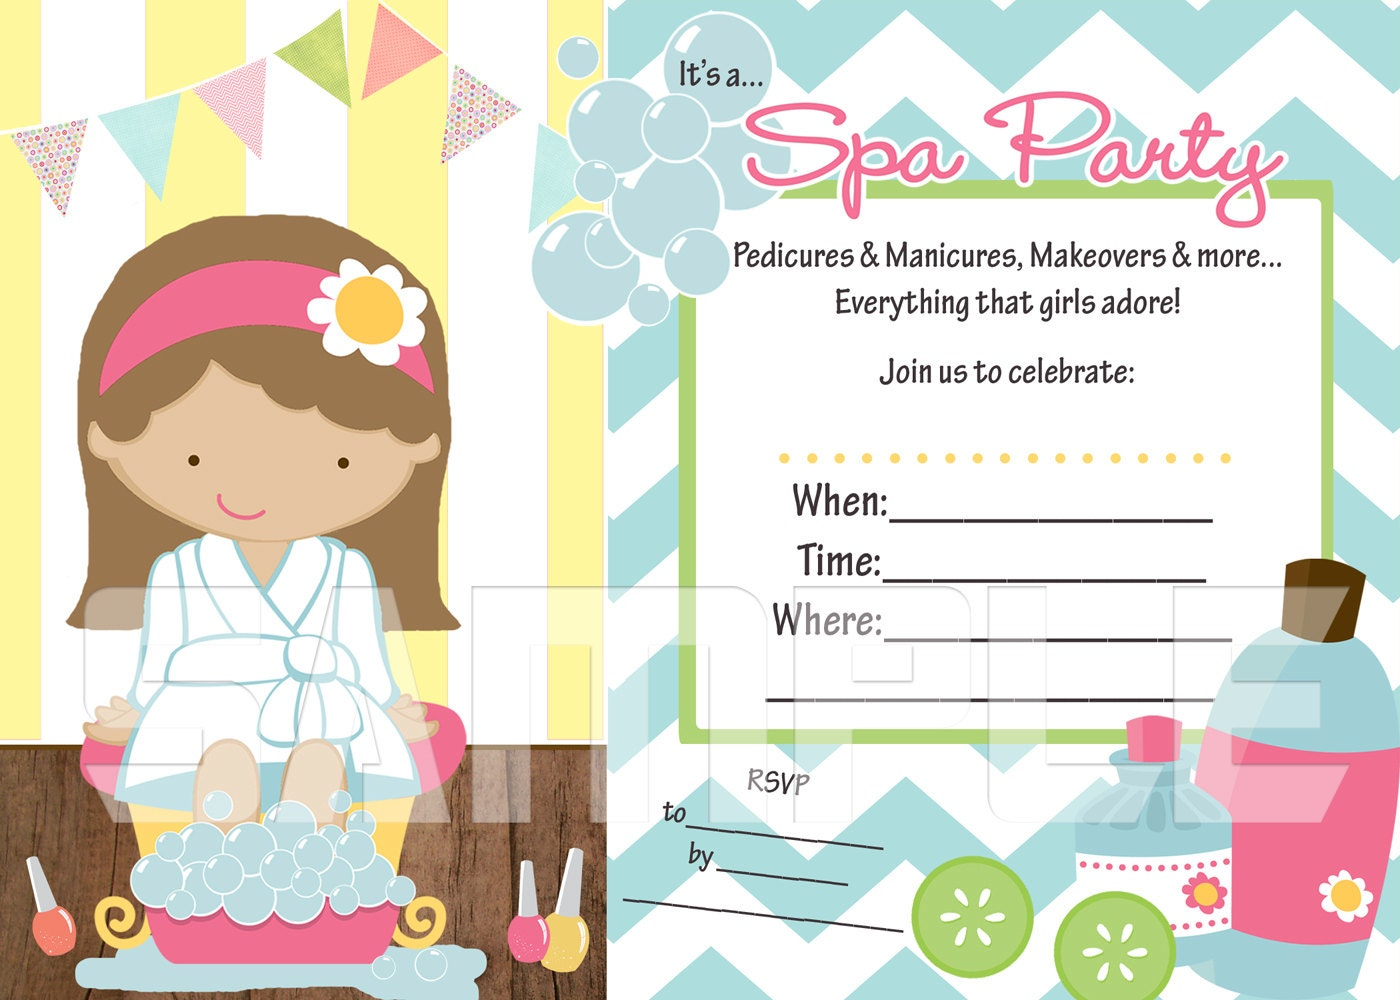 Fill in the Blank Spa Party Printable Invitation by lilbeansprout